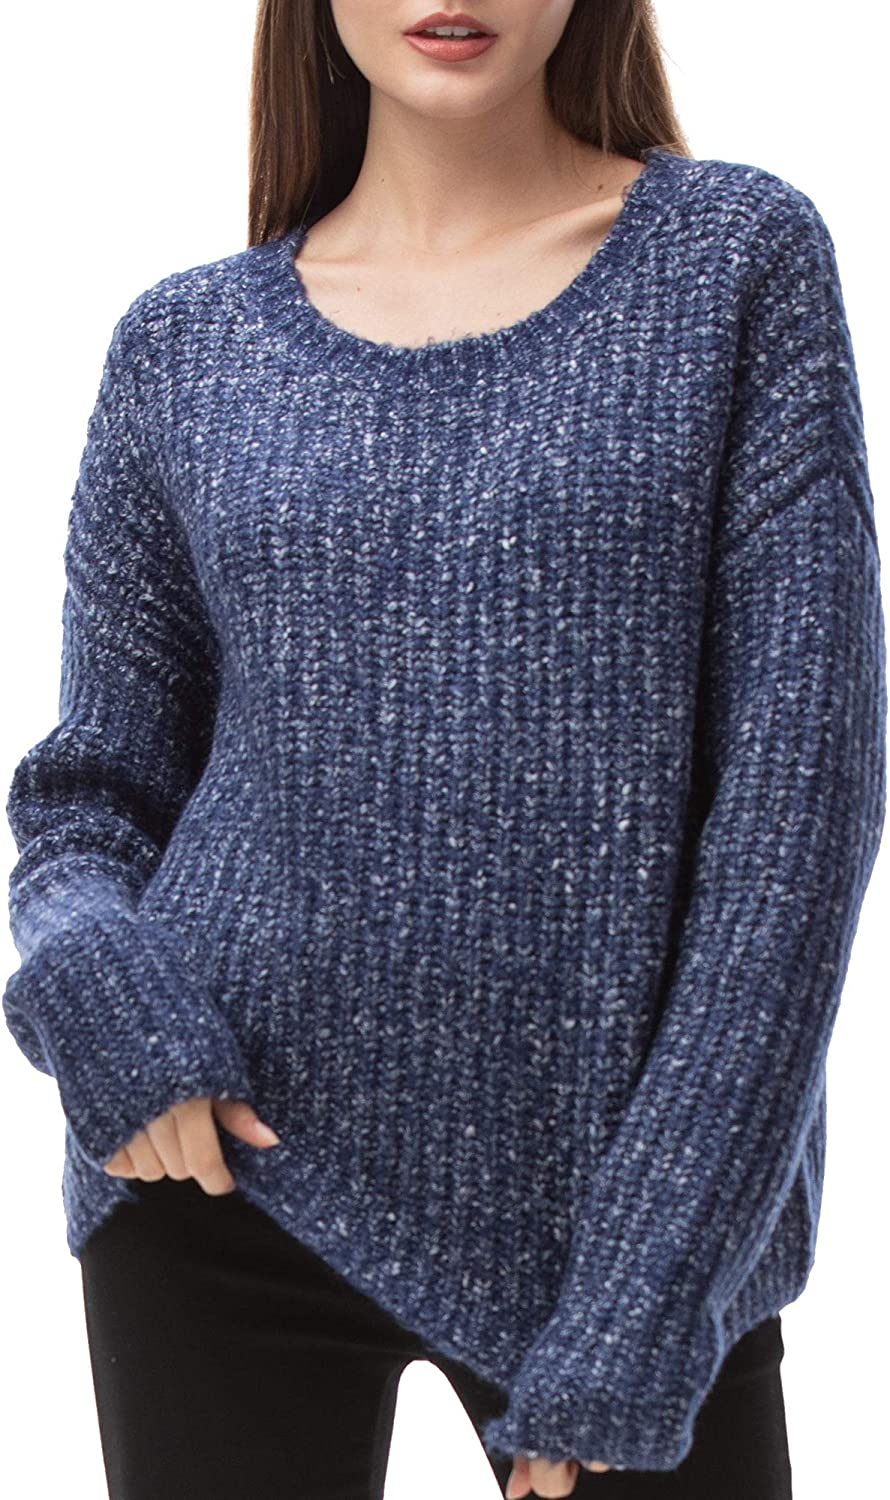 Woolen Bloom Women's Oversized Sweater Long Sleeve Crewneck Loose Fitting Cable Knit Pullover Chunky Warm Winter Tops